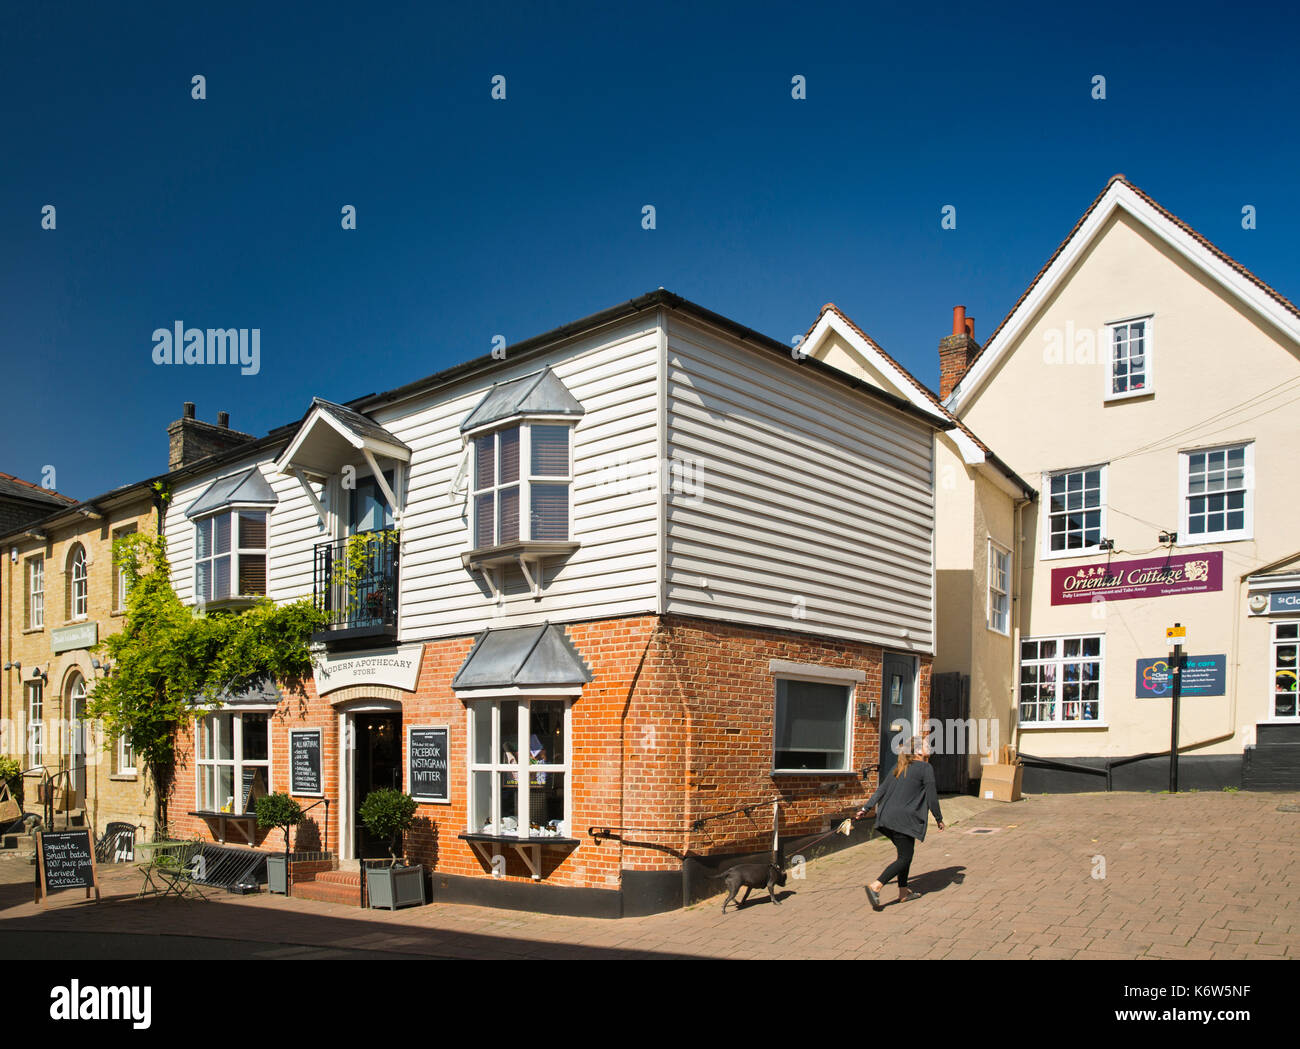 UK, England, Essex, Saffron Walden, town centre, Modern Apothecary Store in The Rows, old market trading area - Stock Image